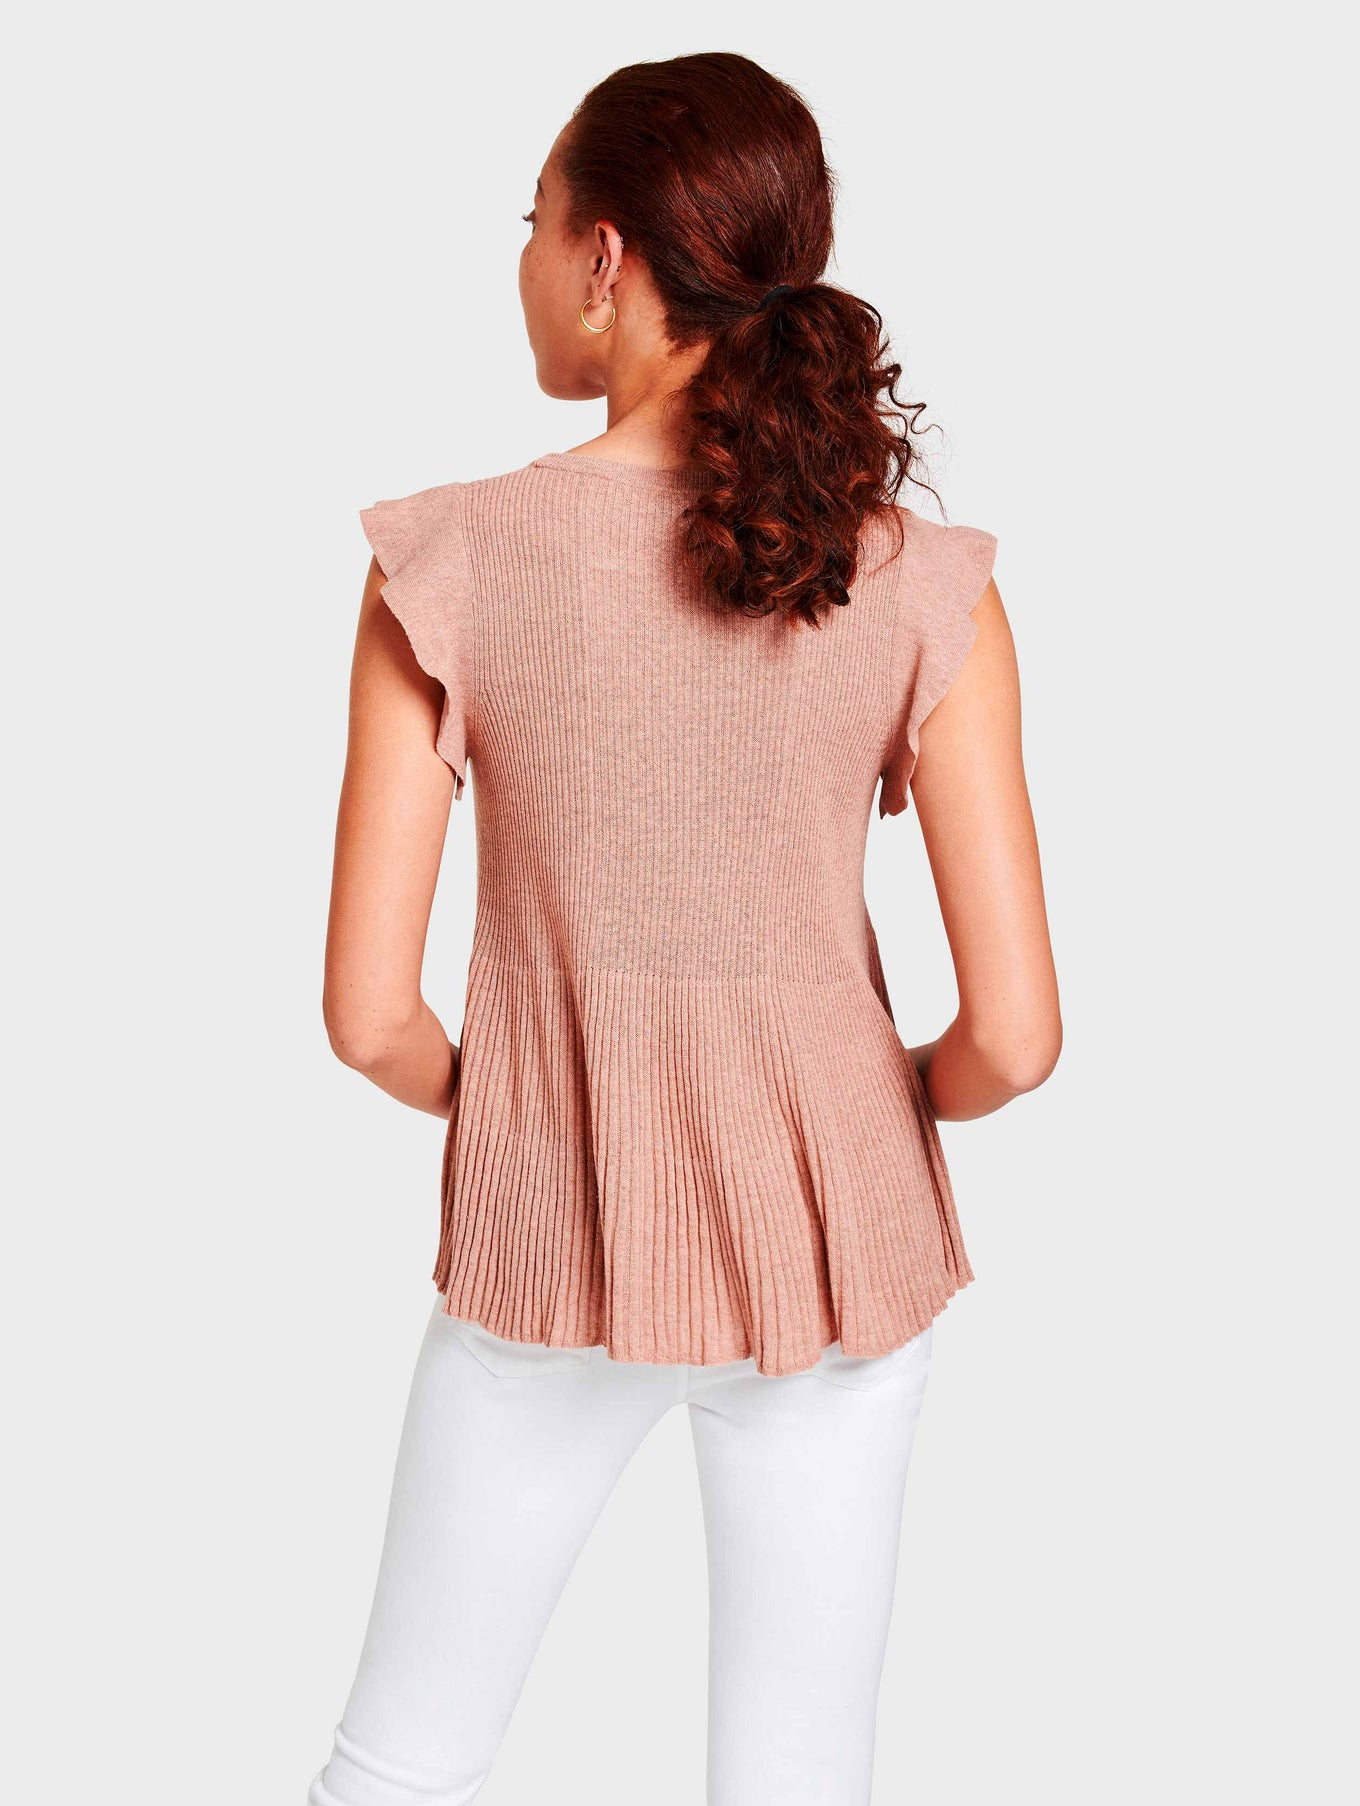 Ribbed Swing Top - Cactus Flower Heather - Image 2